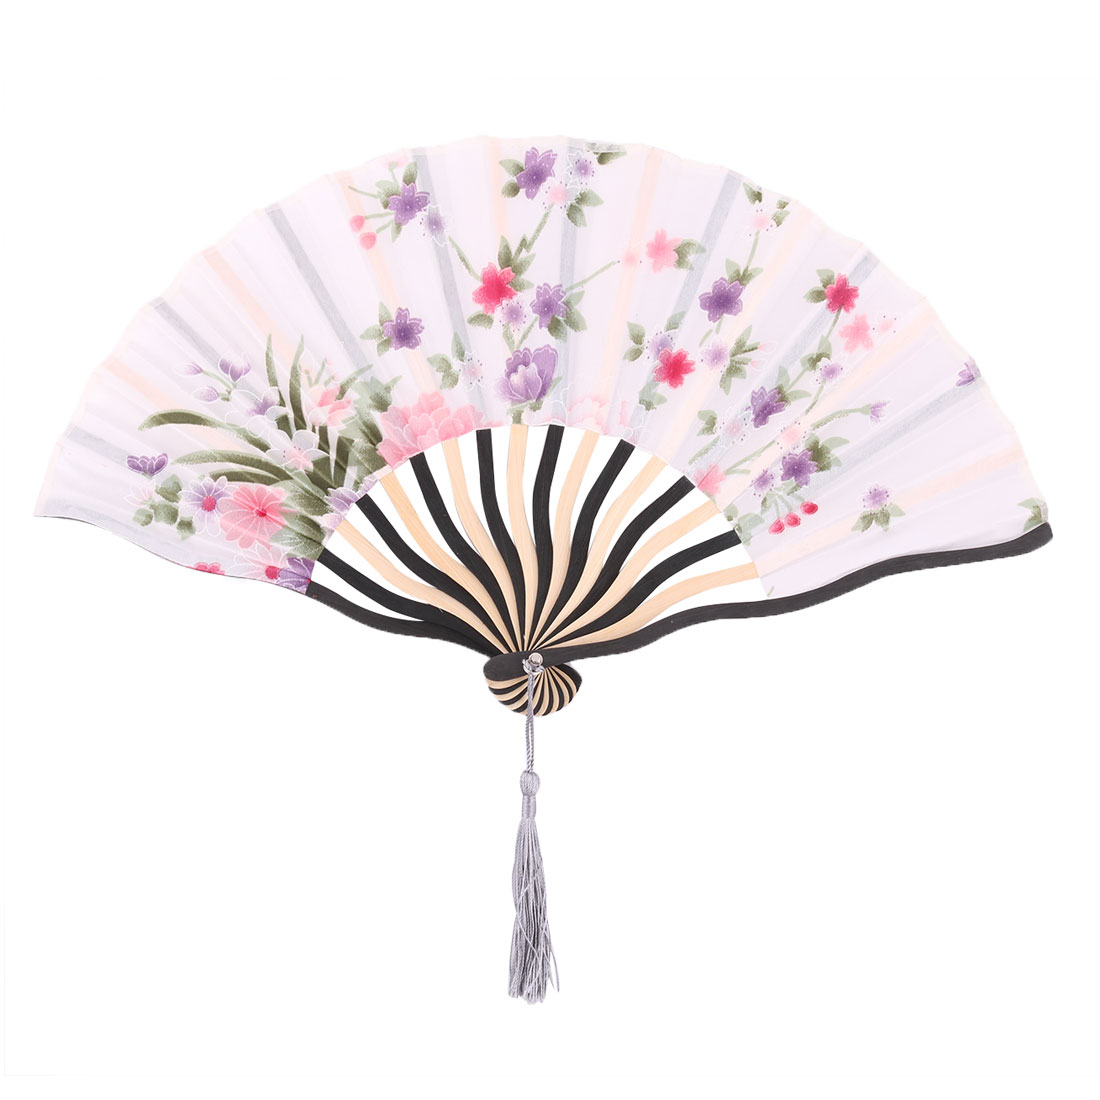 Dancing Bamboo Frame Flower Print Chinese Craft Cooling Foldable Hand Fan White